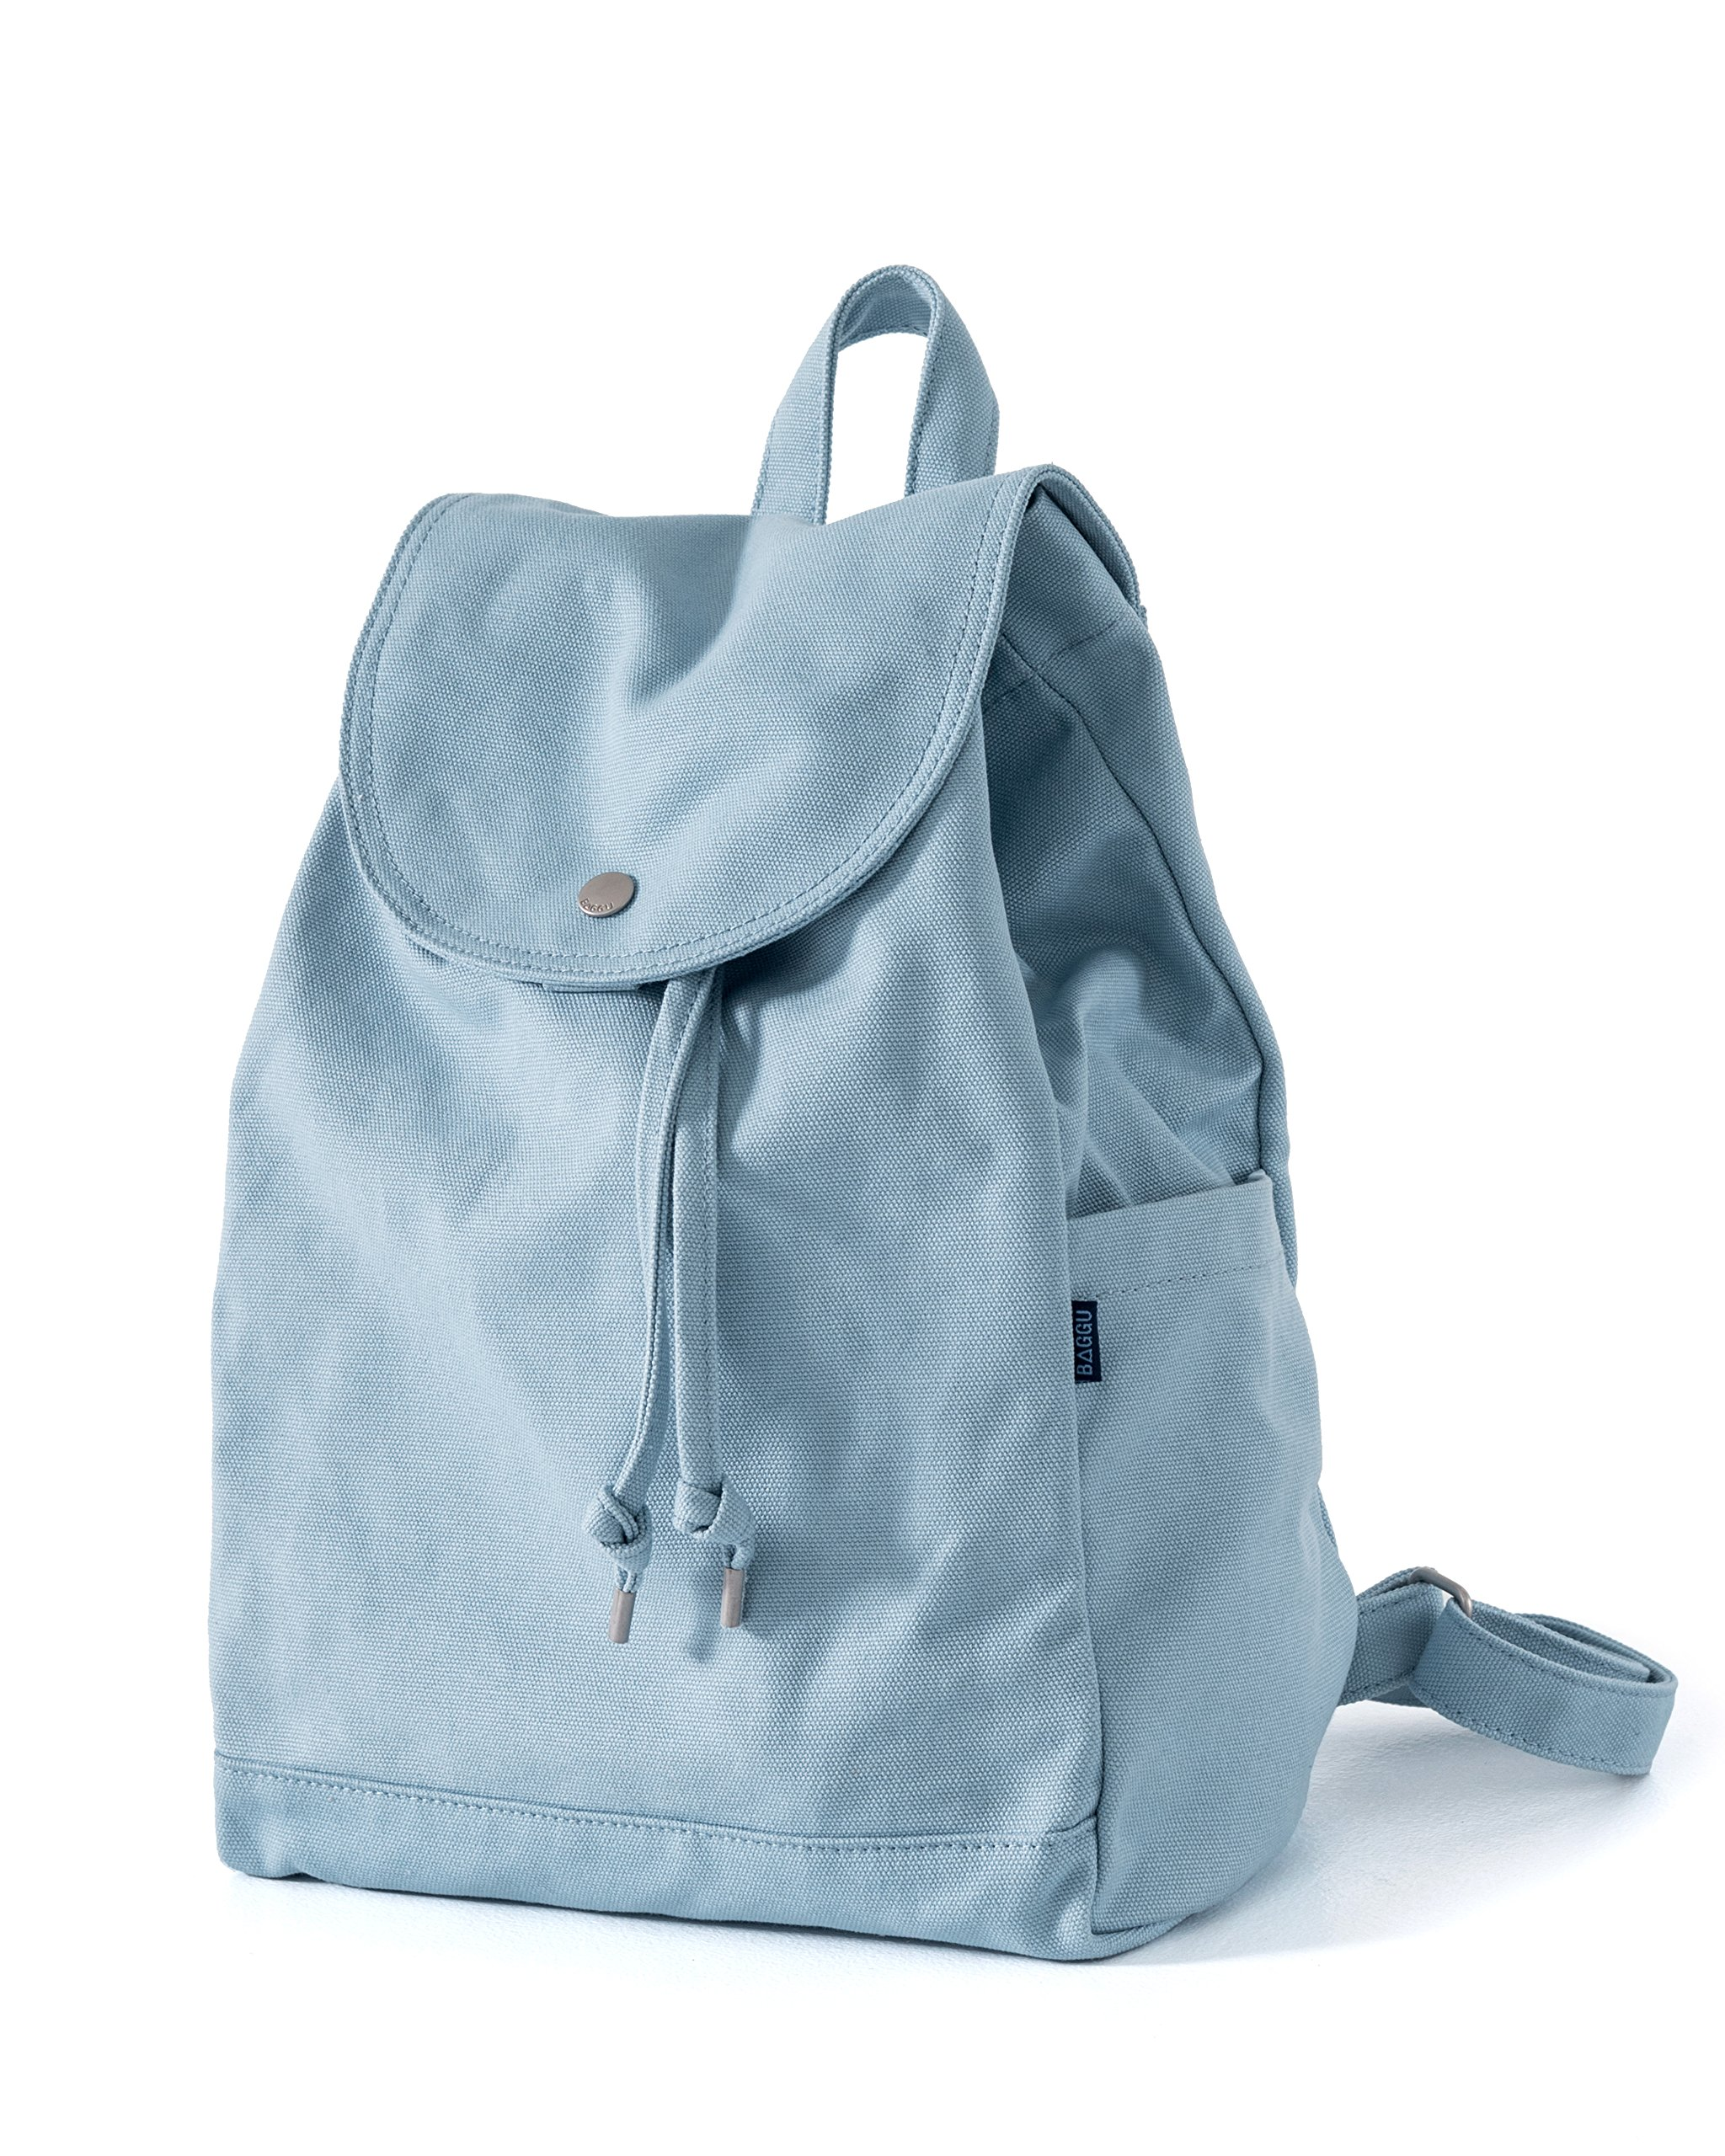 BAGGU Canvas Backpack, Durable and Stylish Simple Canvas Satchel for Daily Essentials, Washed Blue